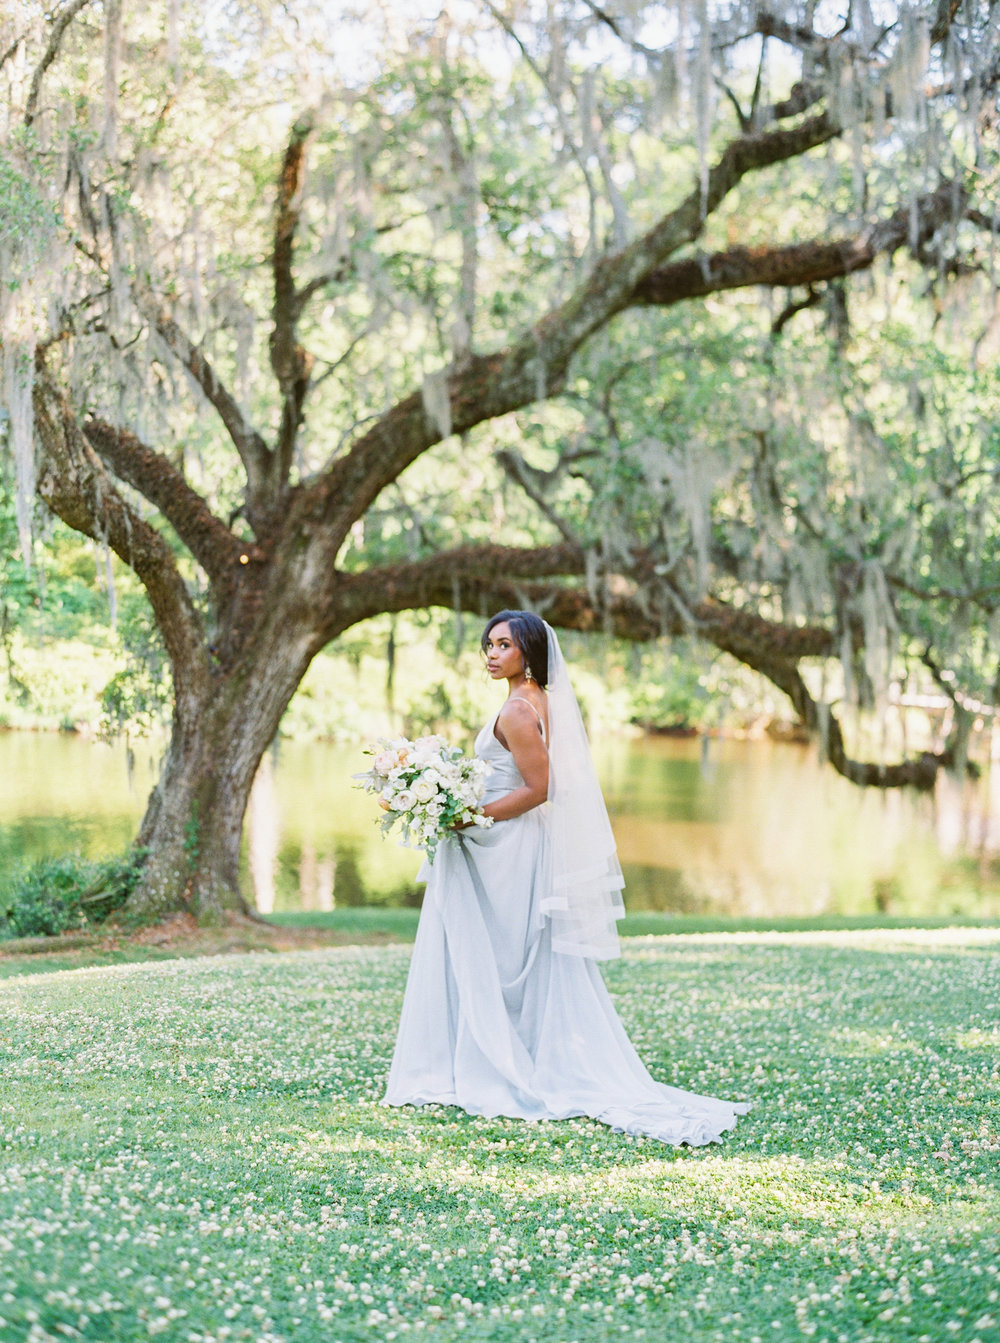 Charleston_Retreat_Kati_Rosado_Fine_Art_Film_Wedding_Photographer-54.jpg